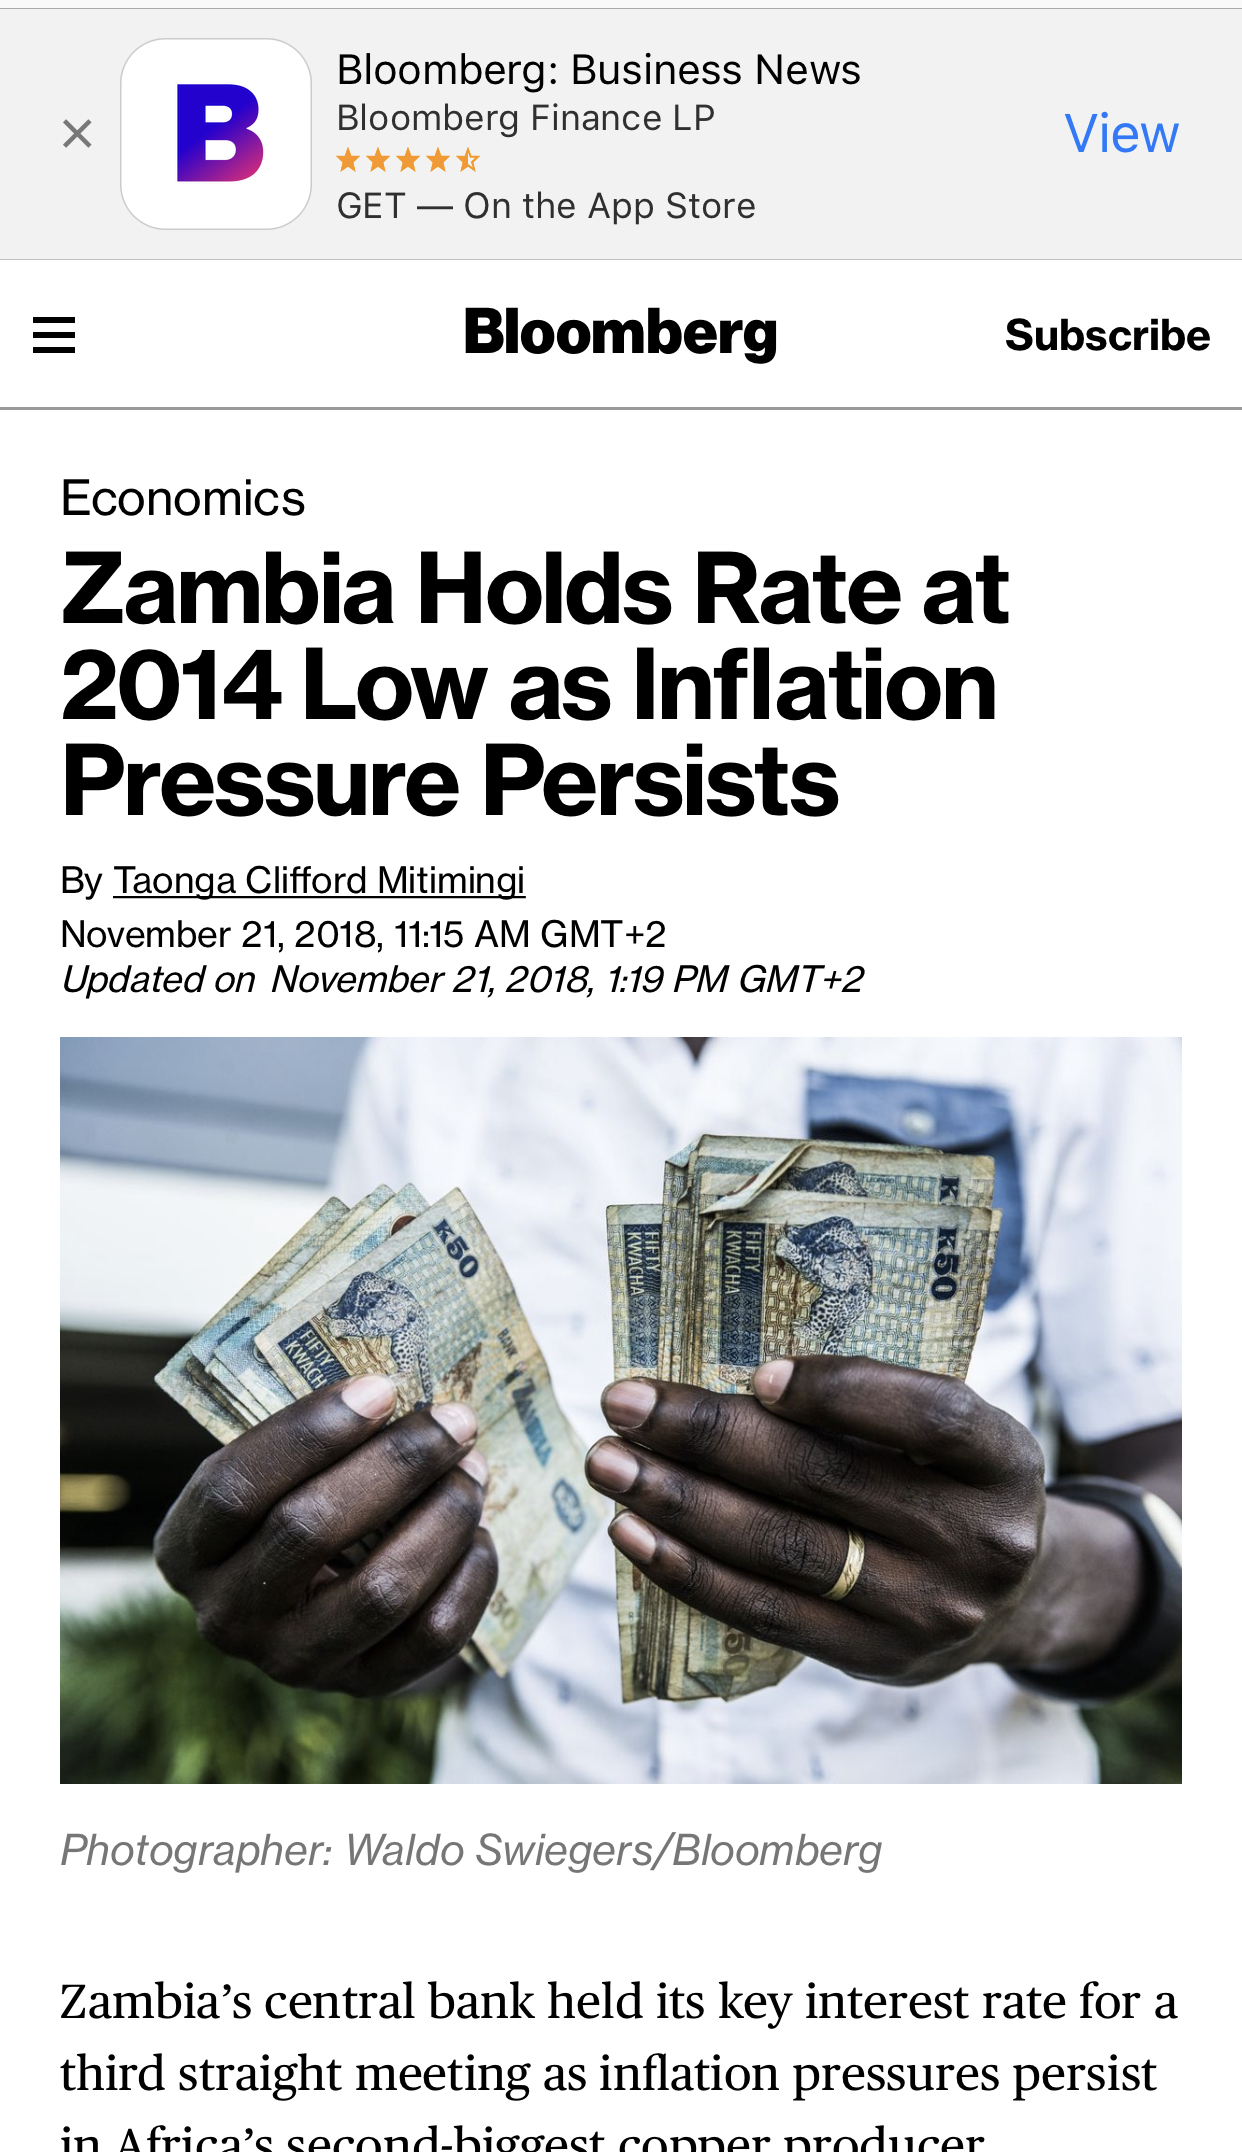 Despite junk status, Zambia hold interest rate low